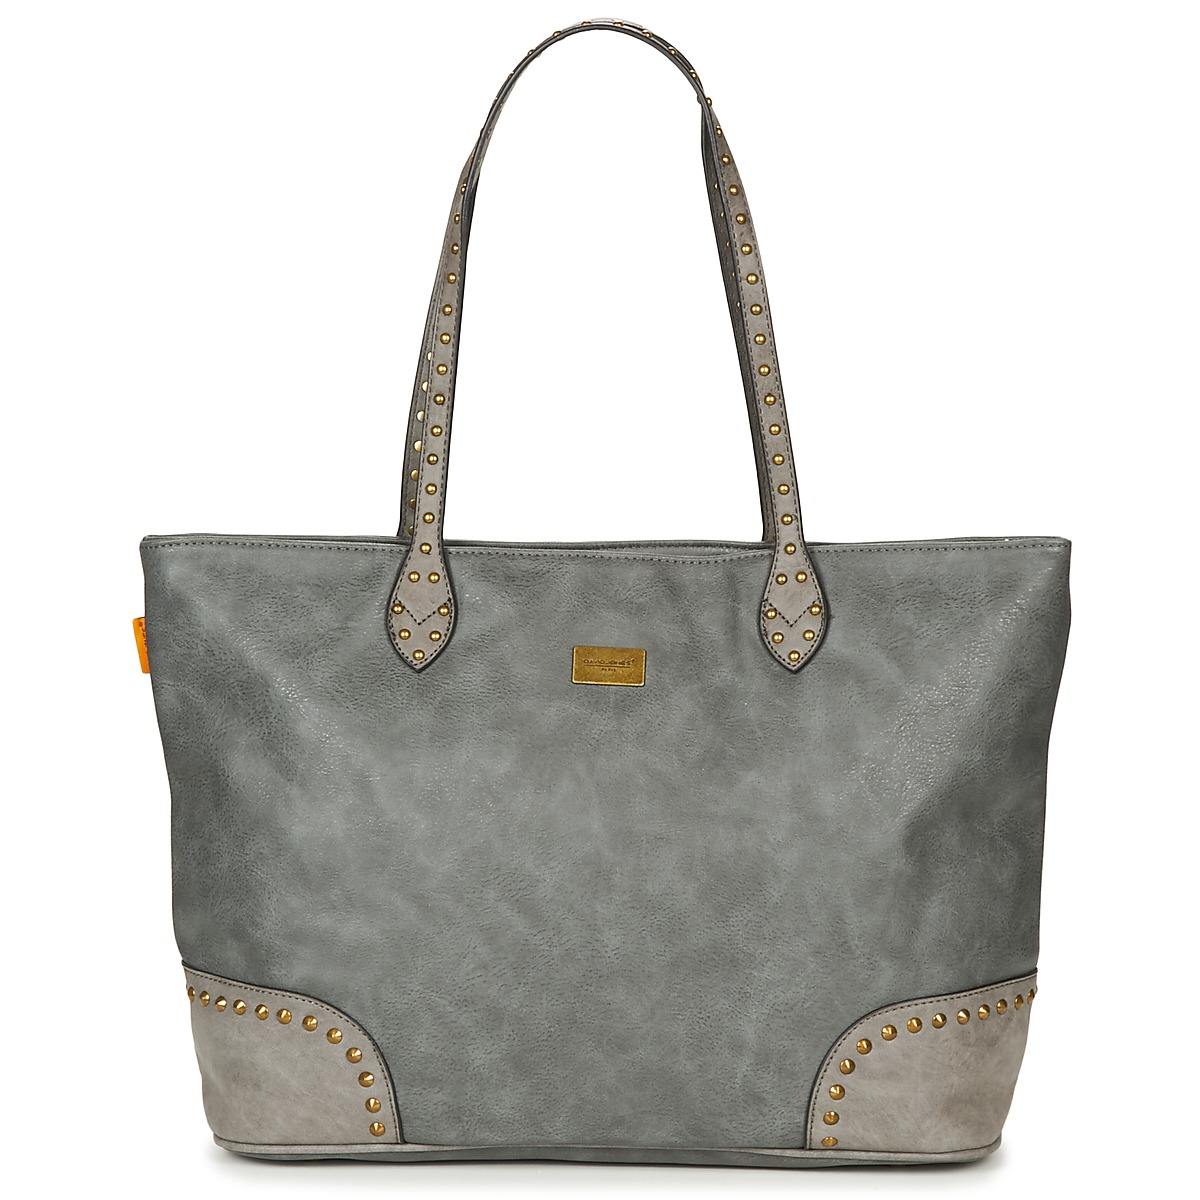 Borsa Shopping donna David Jones  -  Grigio